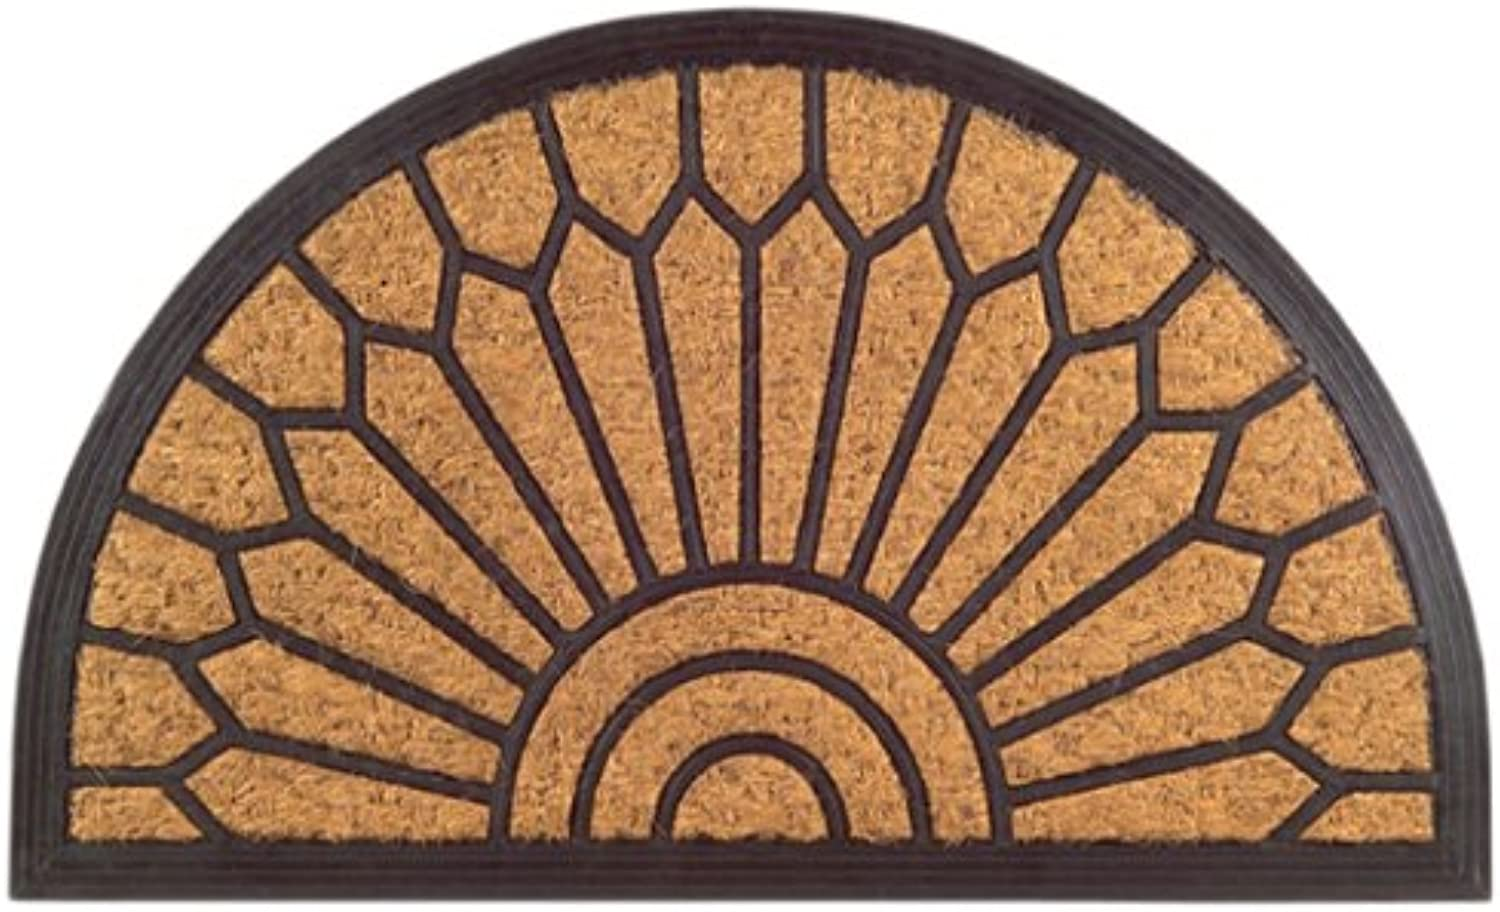 Imports Decor Half Round Rubber Back Coir Doormat, Lily, 18-Inch by 30-Inch